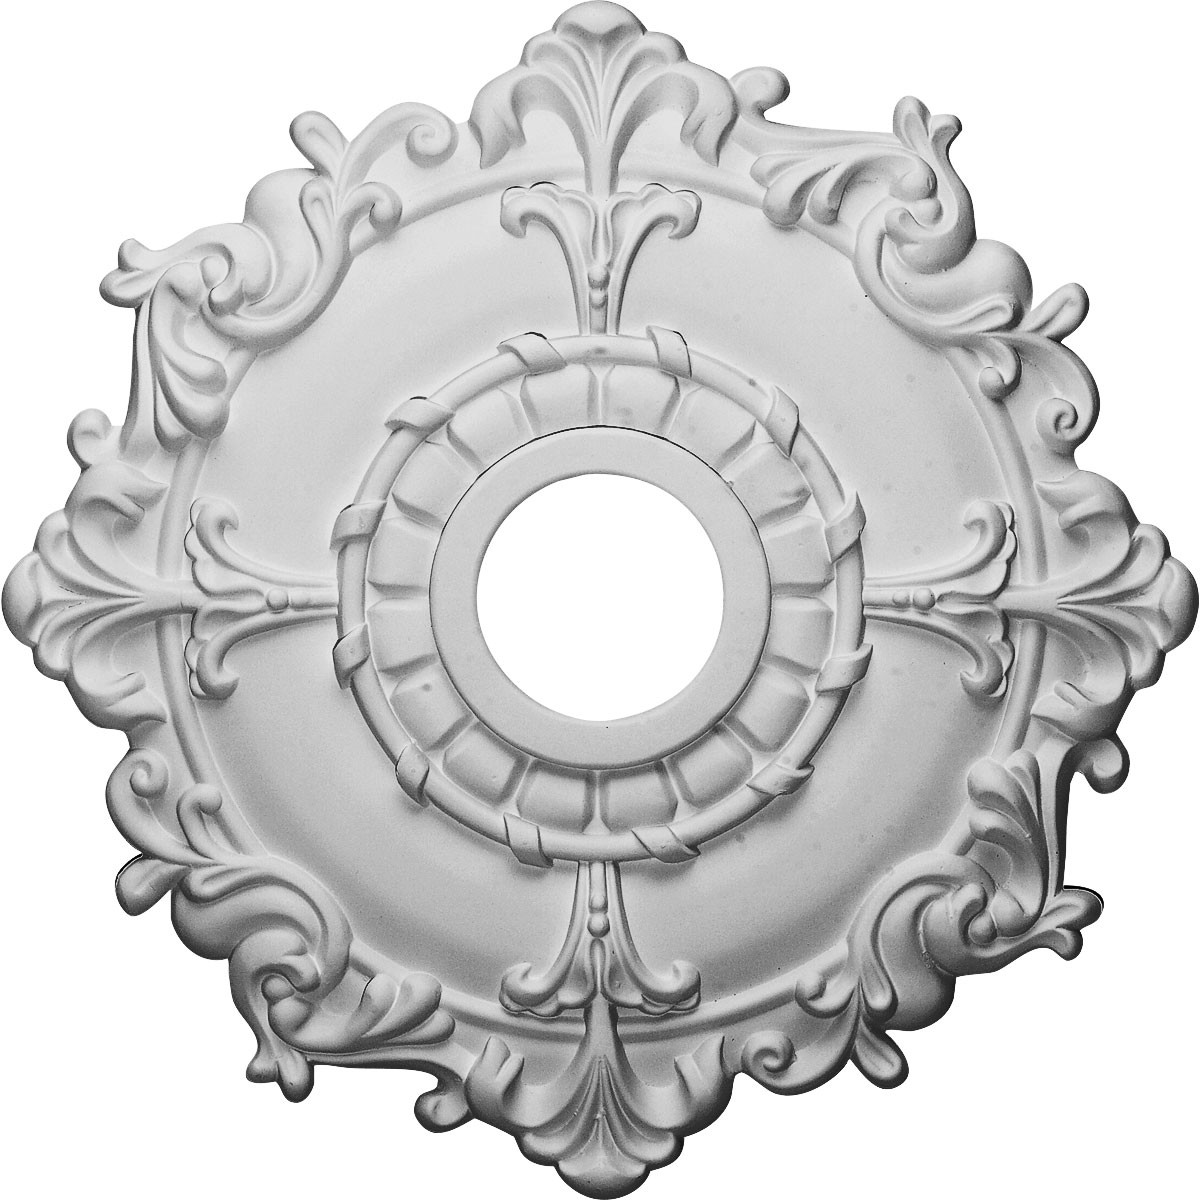 """EM-CM18RL - 18""""OD x 3 1/2""""ID x 1 1/2""""P Riley Ceiling Medallion (Fits Canopies up to 4 5/8"""")"""